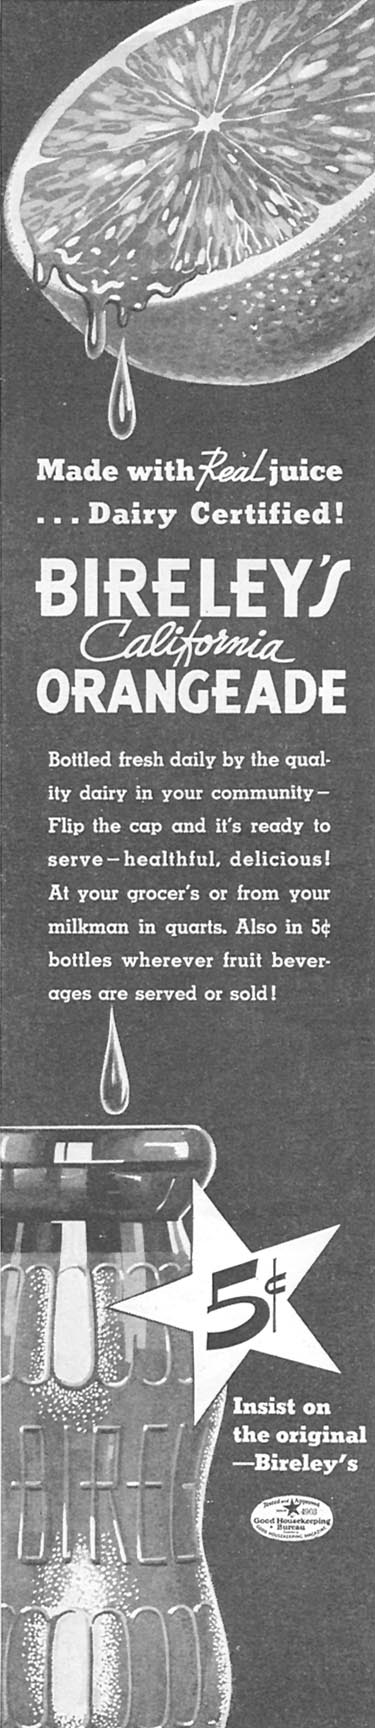 BIRELEY'S CALIFORNIA ORANGEADE GOOD HOUSEKEEPING 06/01/1935 p. 190